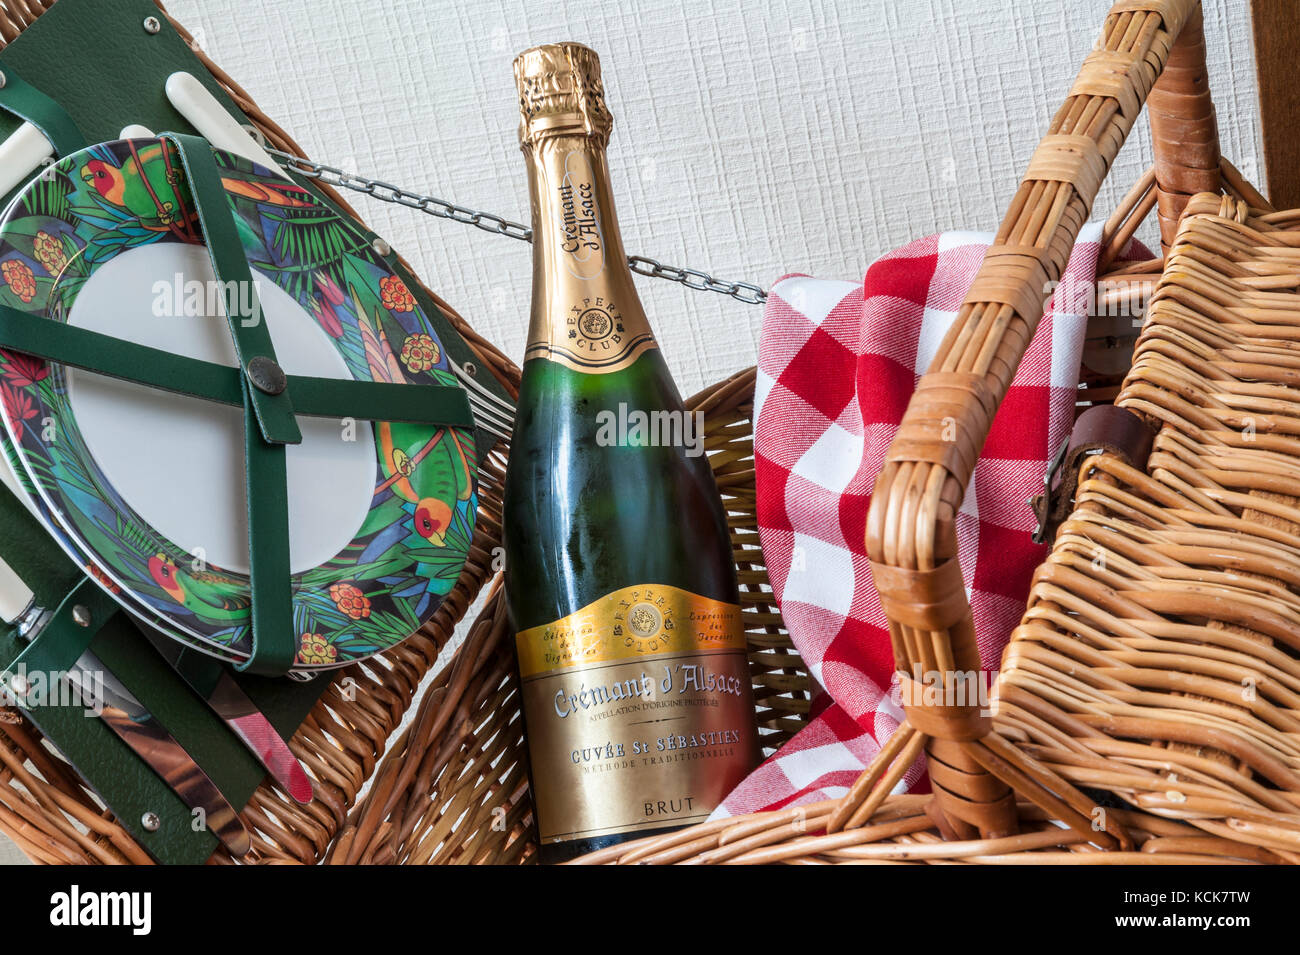 Picnic preparations with Cremant d'Alsace bottle in picnic hamper basket with typical chequered tablecloth - Stock Image